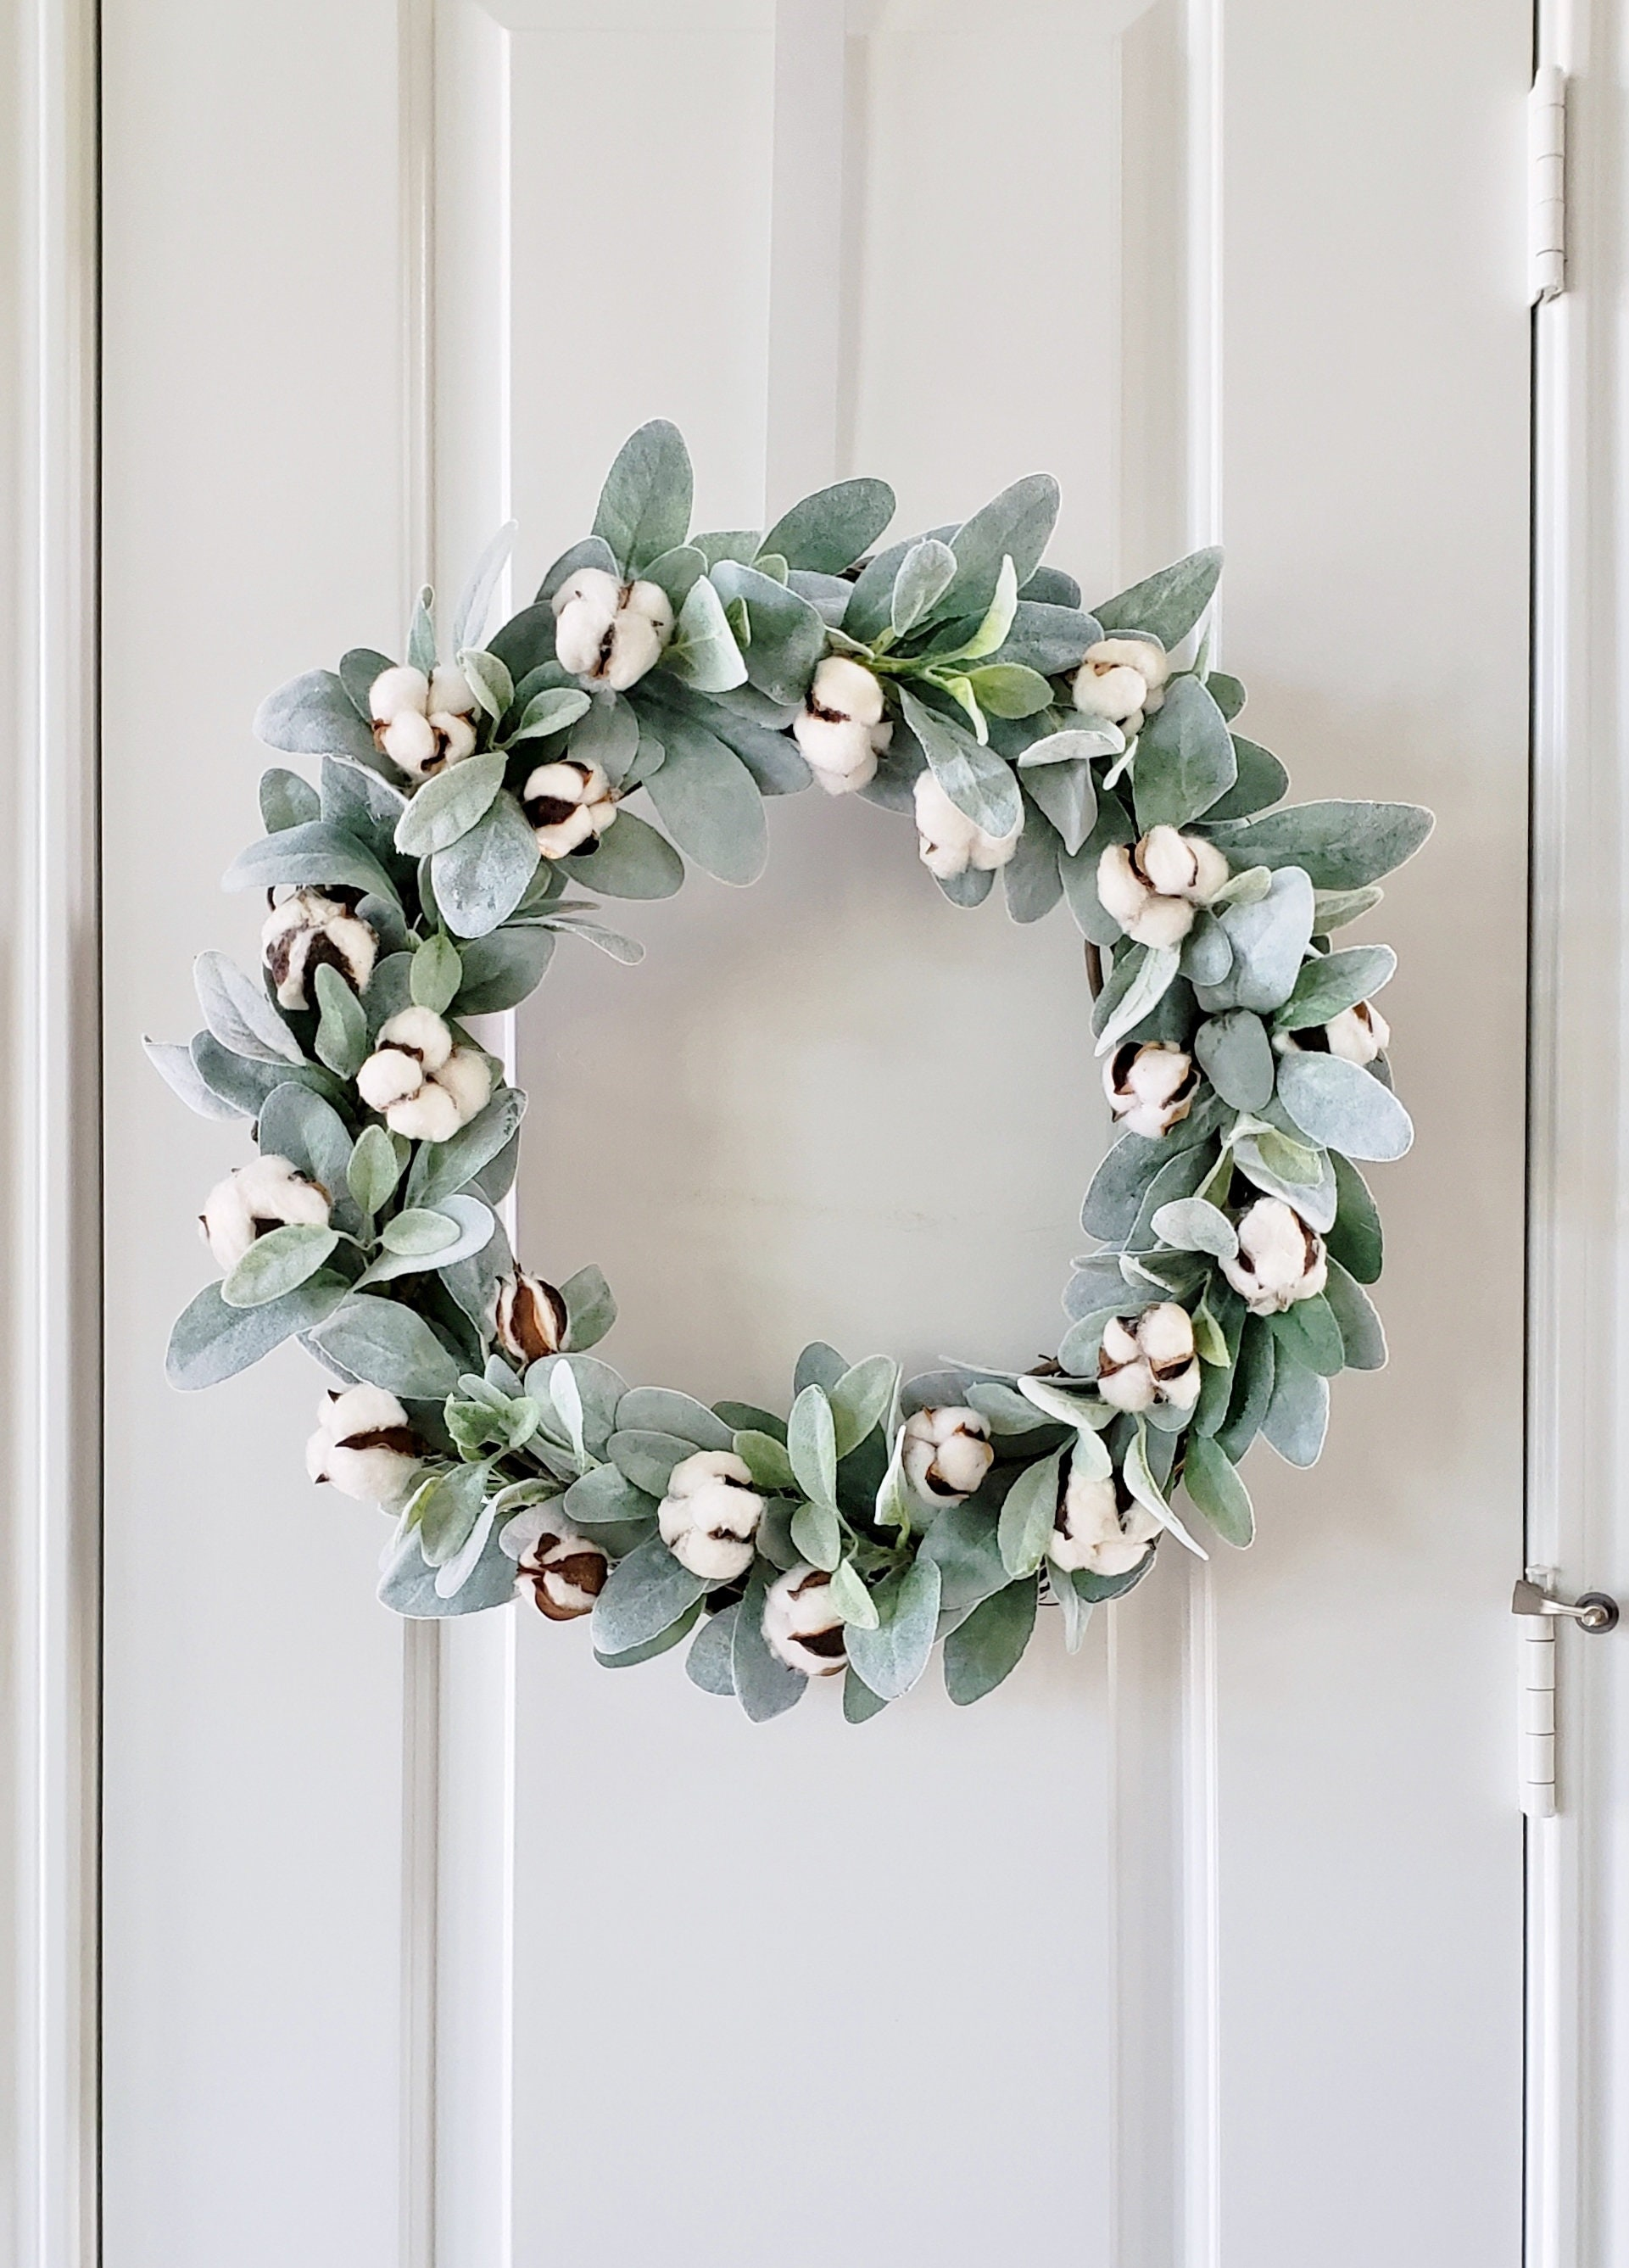 16 To 32 Inch Lamb S Ear Cotton Grapevine Wreath Farmhouse Wreath Door Wreath Monogram Wreath